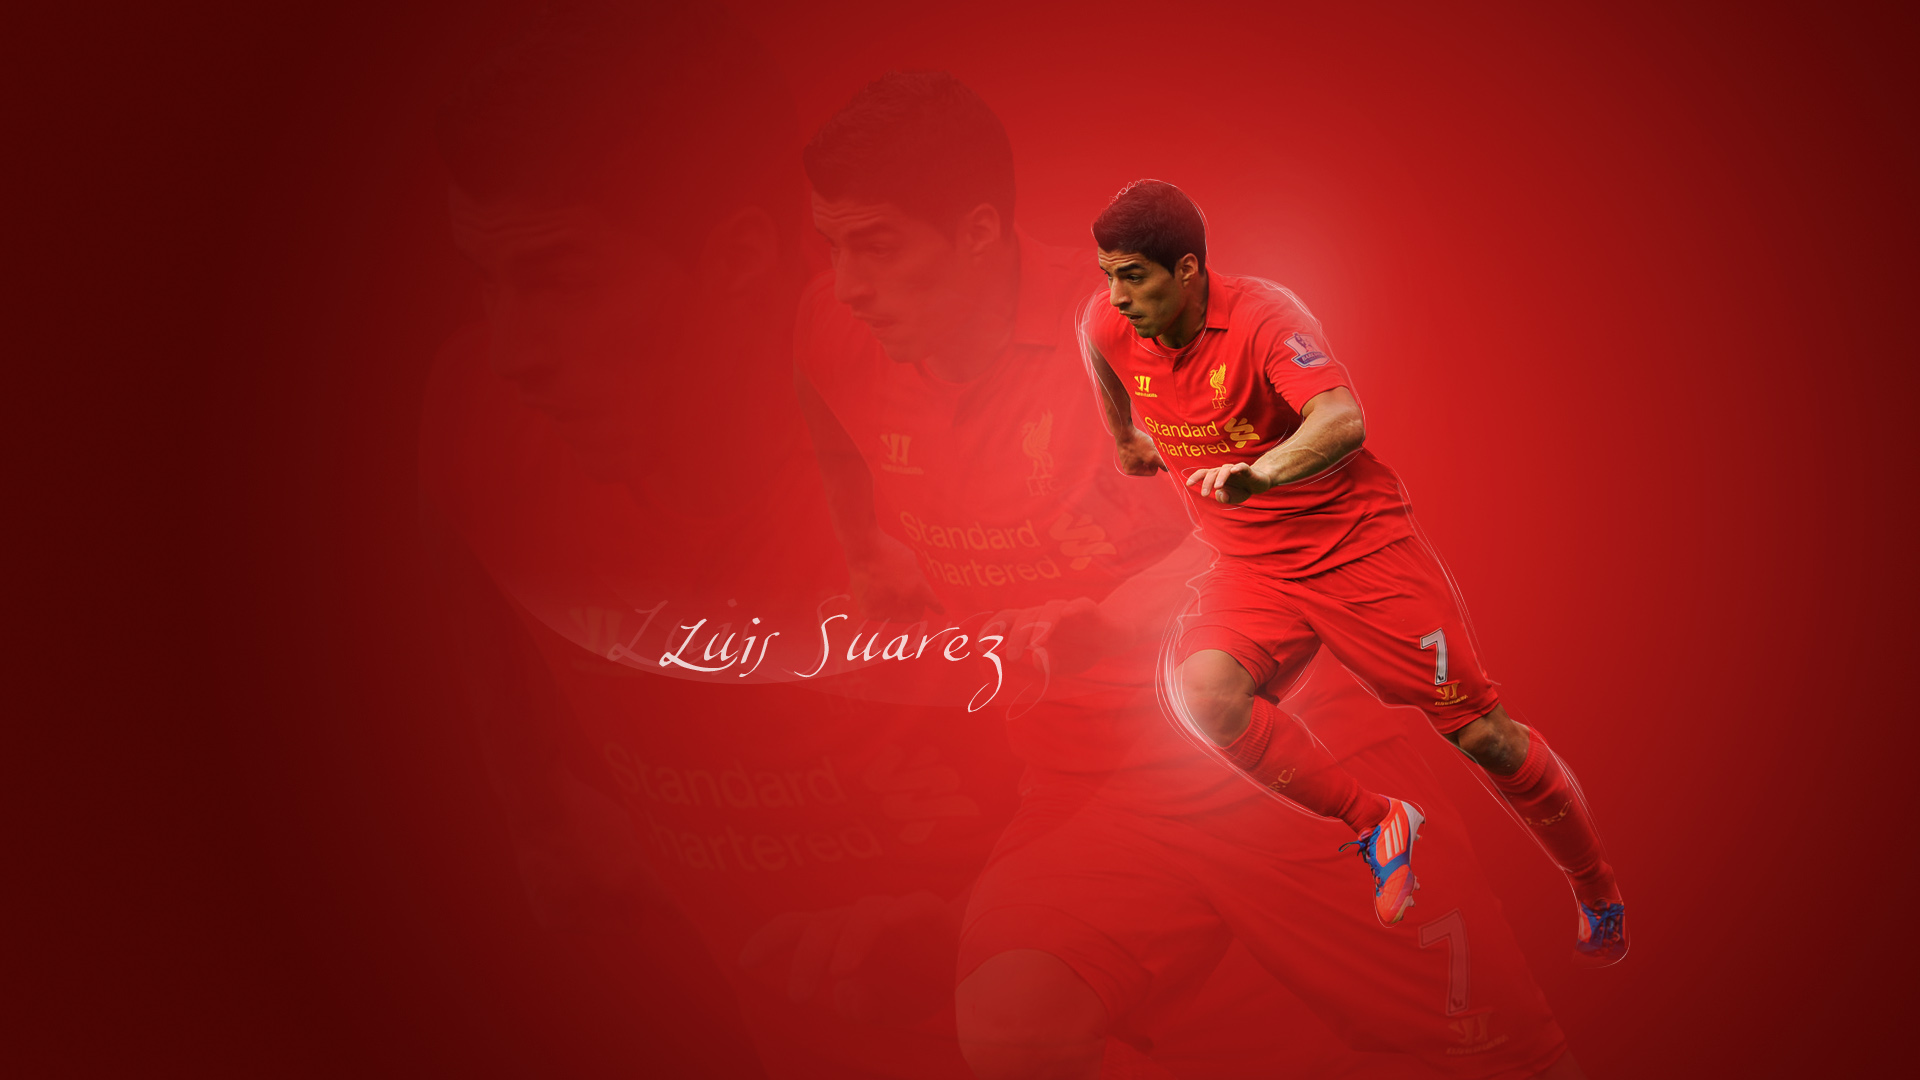 Luis Suarez 2014 Liverpool Wallpaper   Football HD Wallpapers 1920x1080